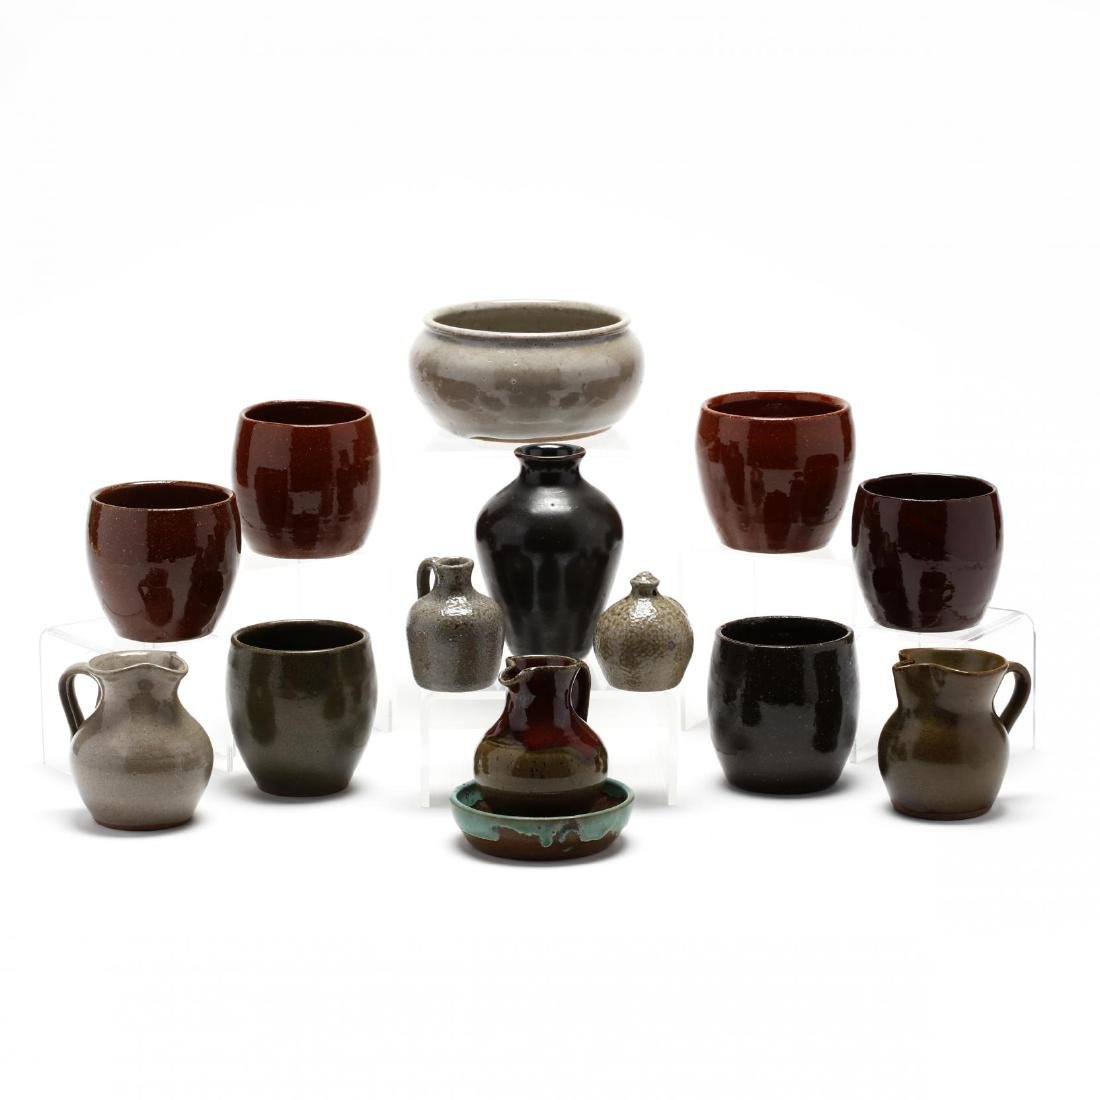 An Assortment of Jugtown Pottery